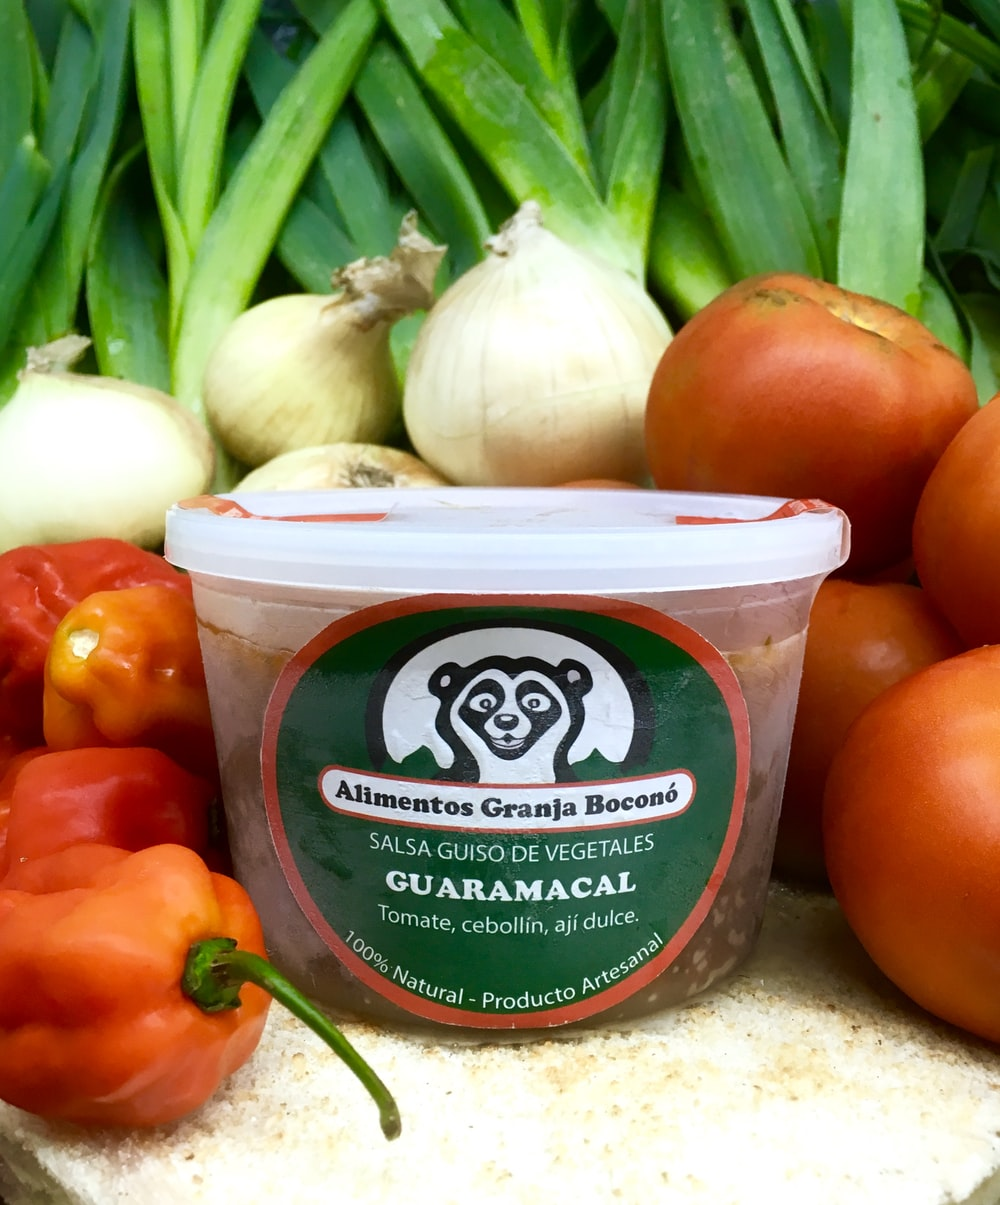 Guaramacal container